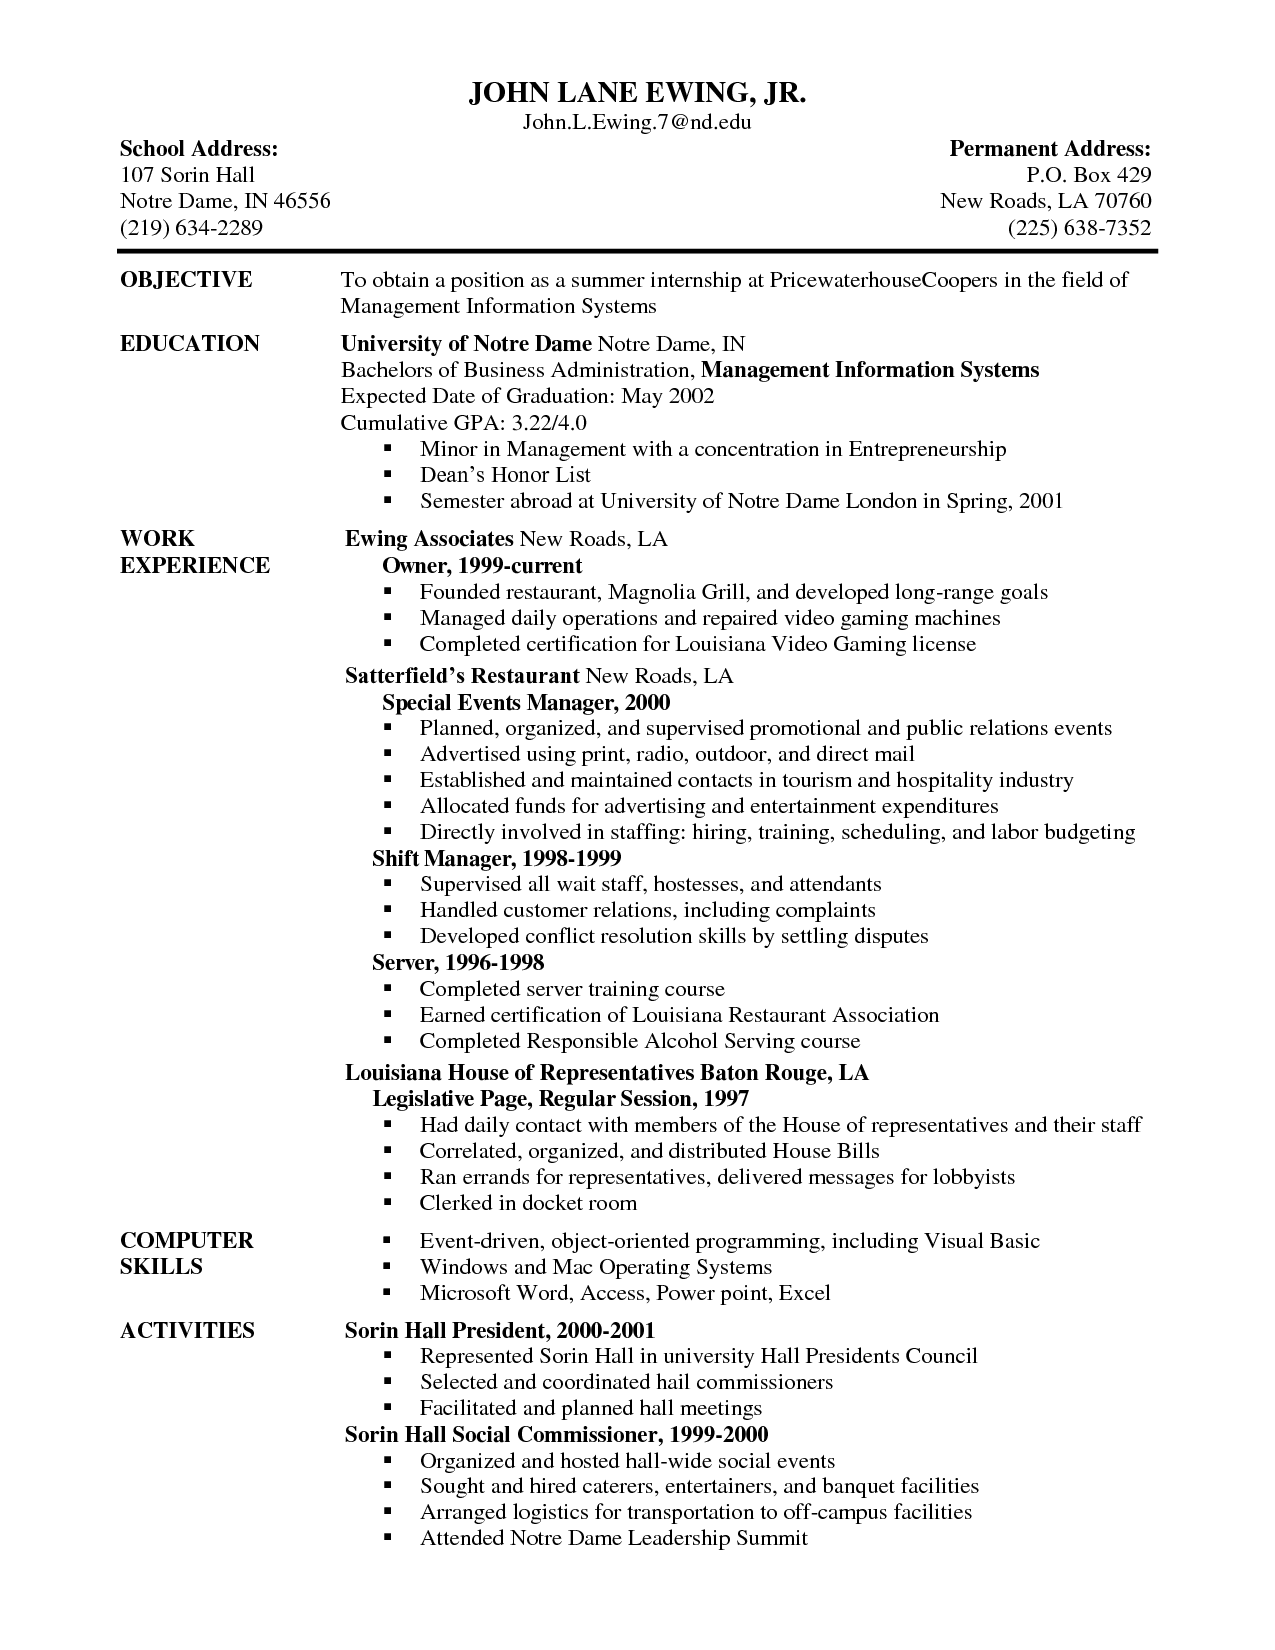 Resume Template Doc Server Resume Skills Template Doc Serving Job Examples Description